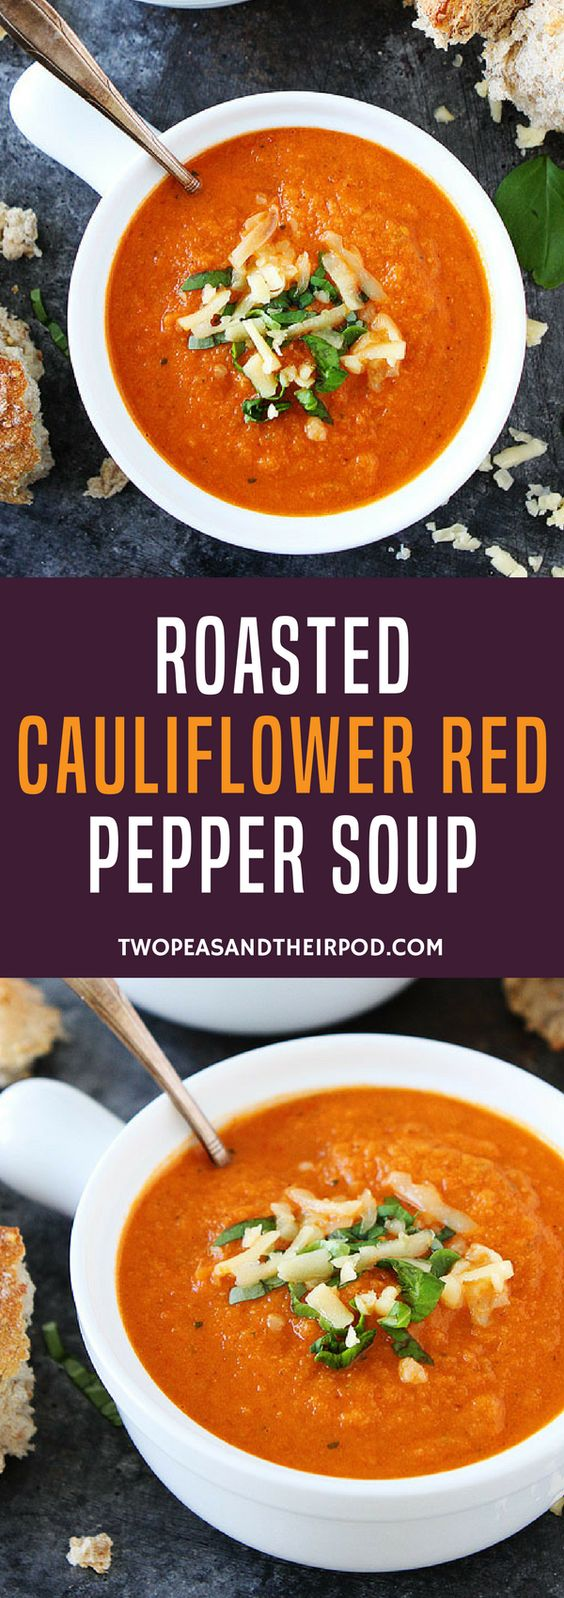 Roasted Cauliflower Red Pepper Soup | Two Peas & Their Pod